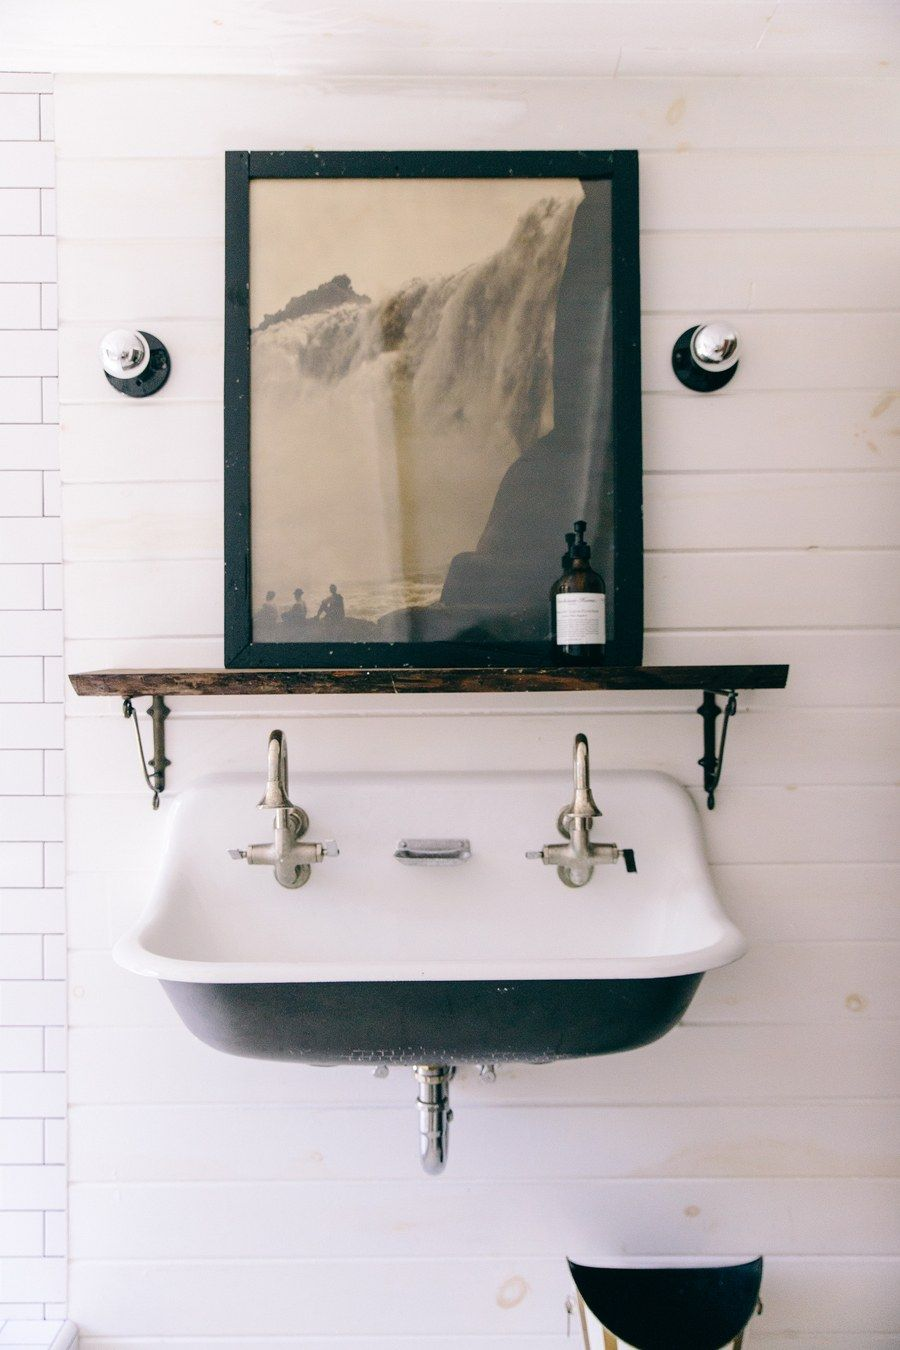 country living never looked so cool bathrooms pinterest rh pinterest co uk Primitive Country Bathroom Sinks Bathroom Farm Style Sink